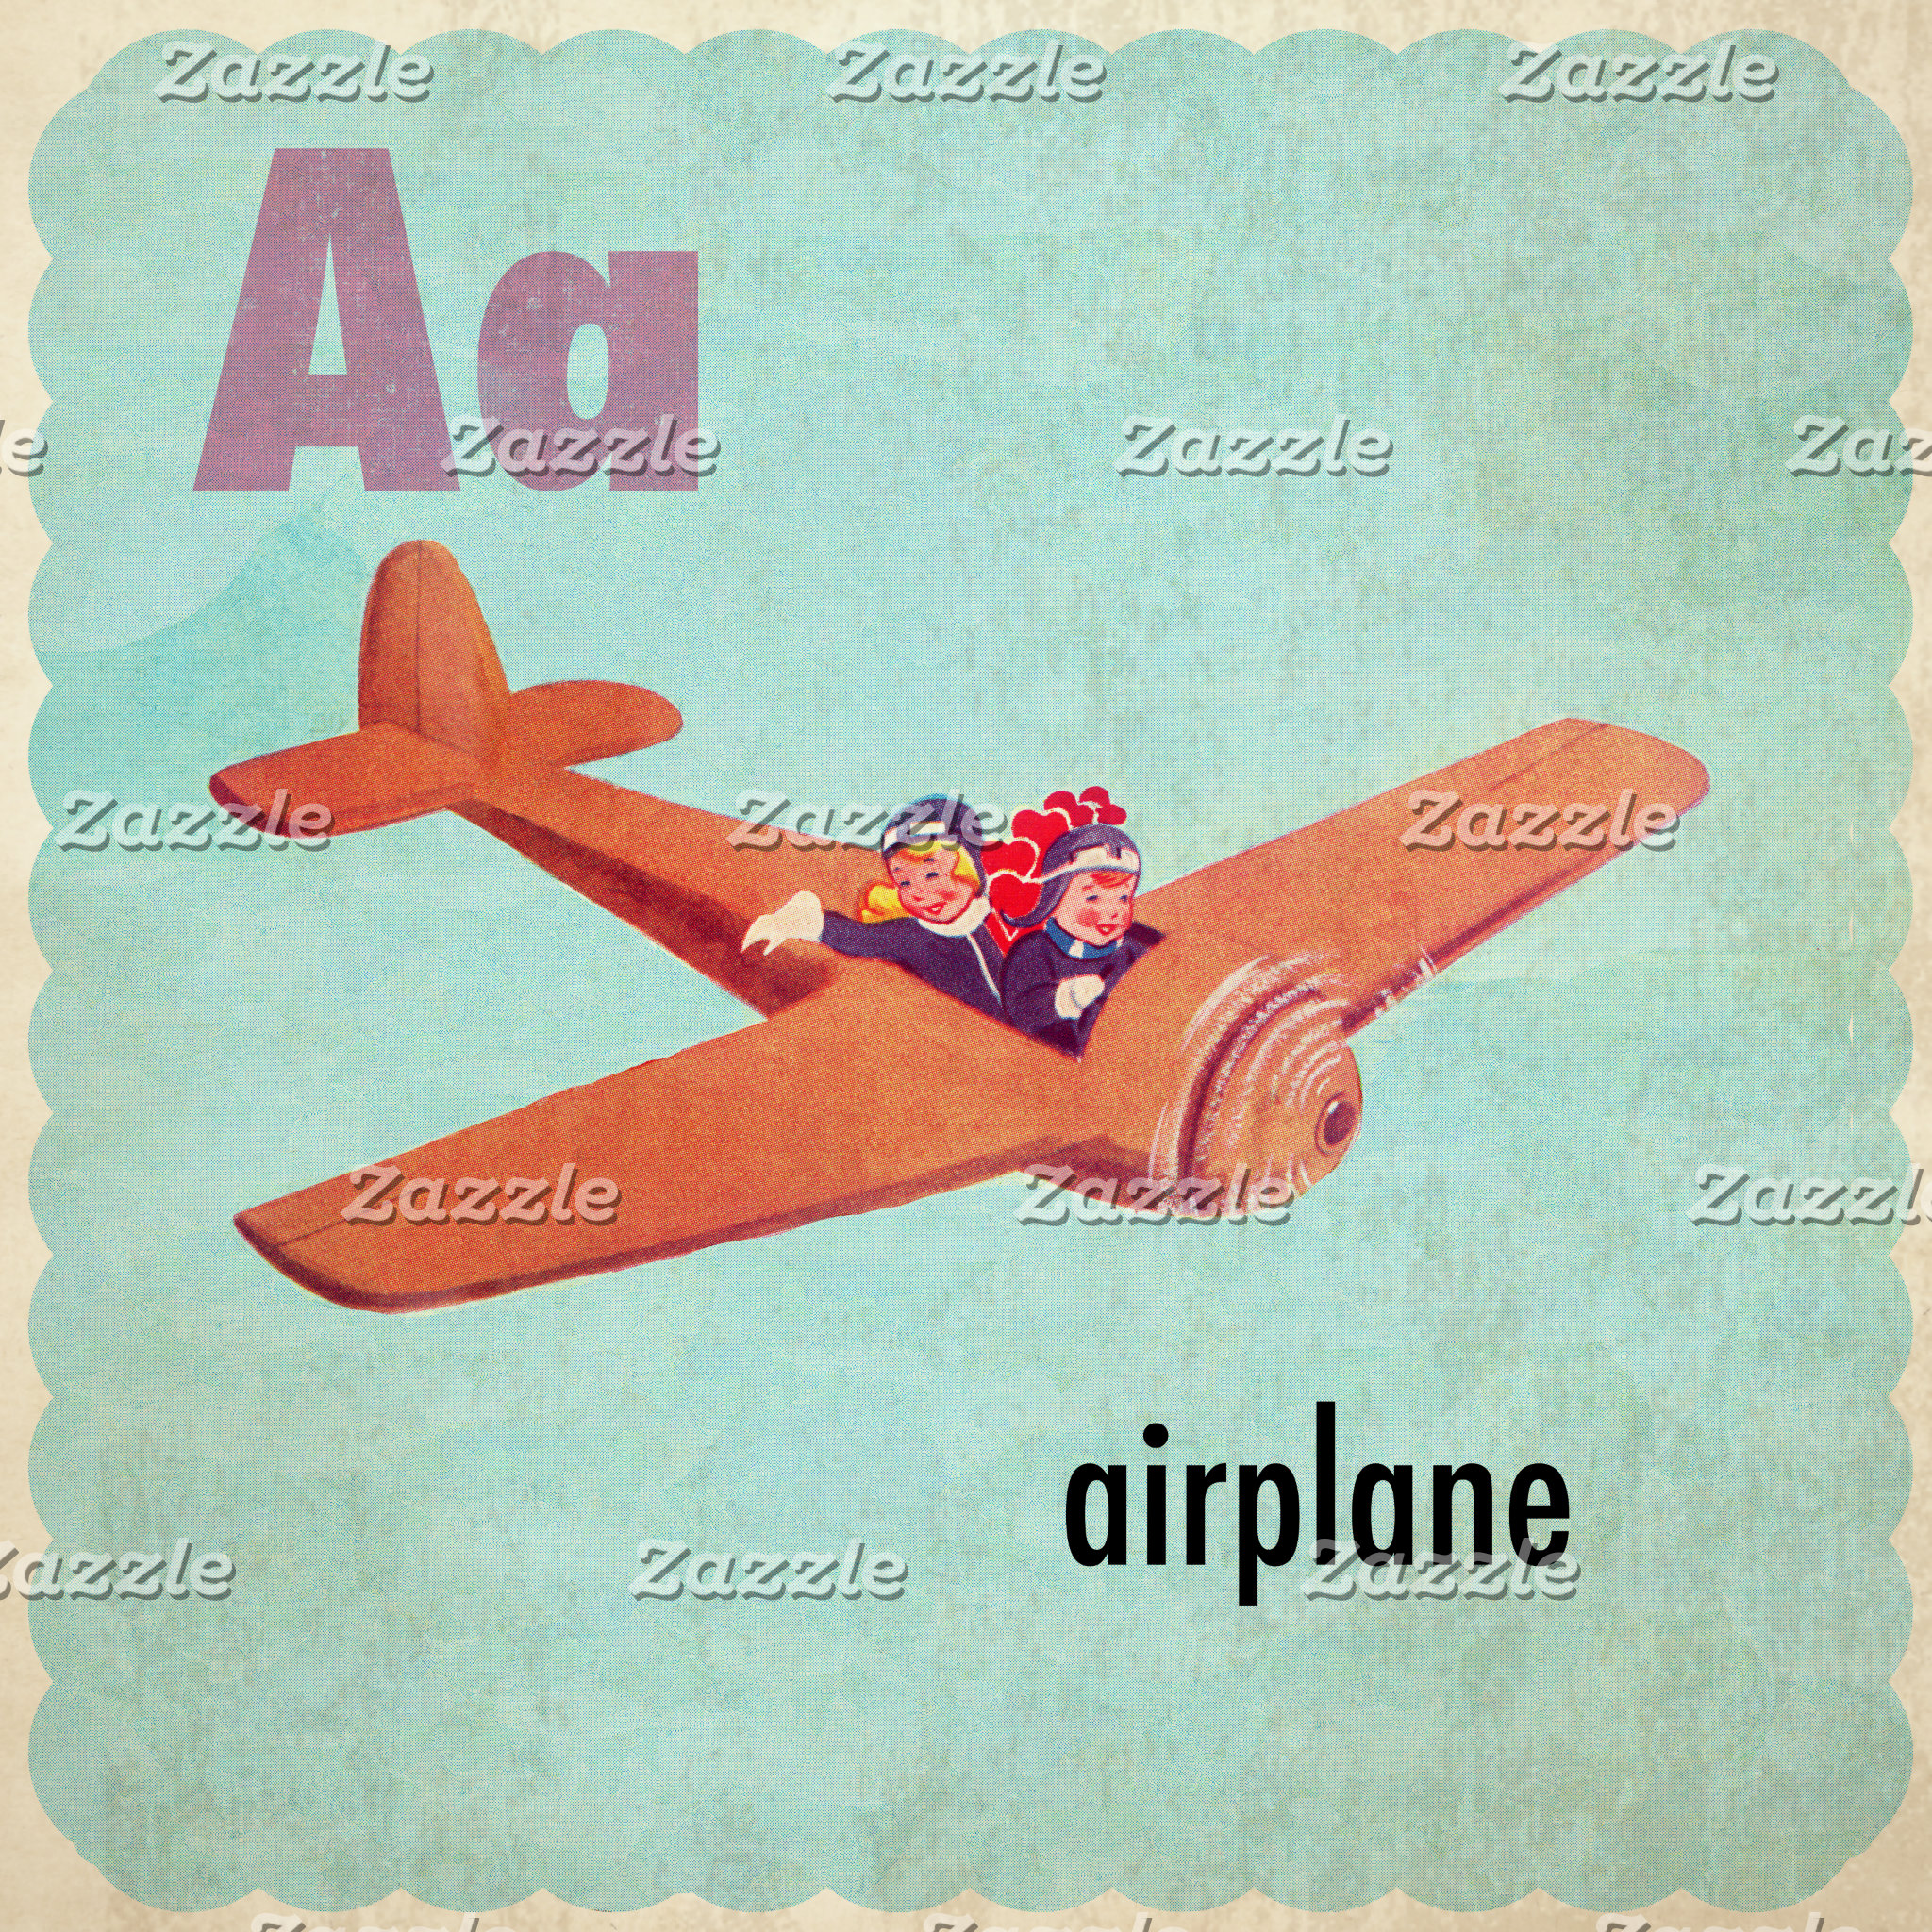 A is for Airplane